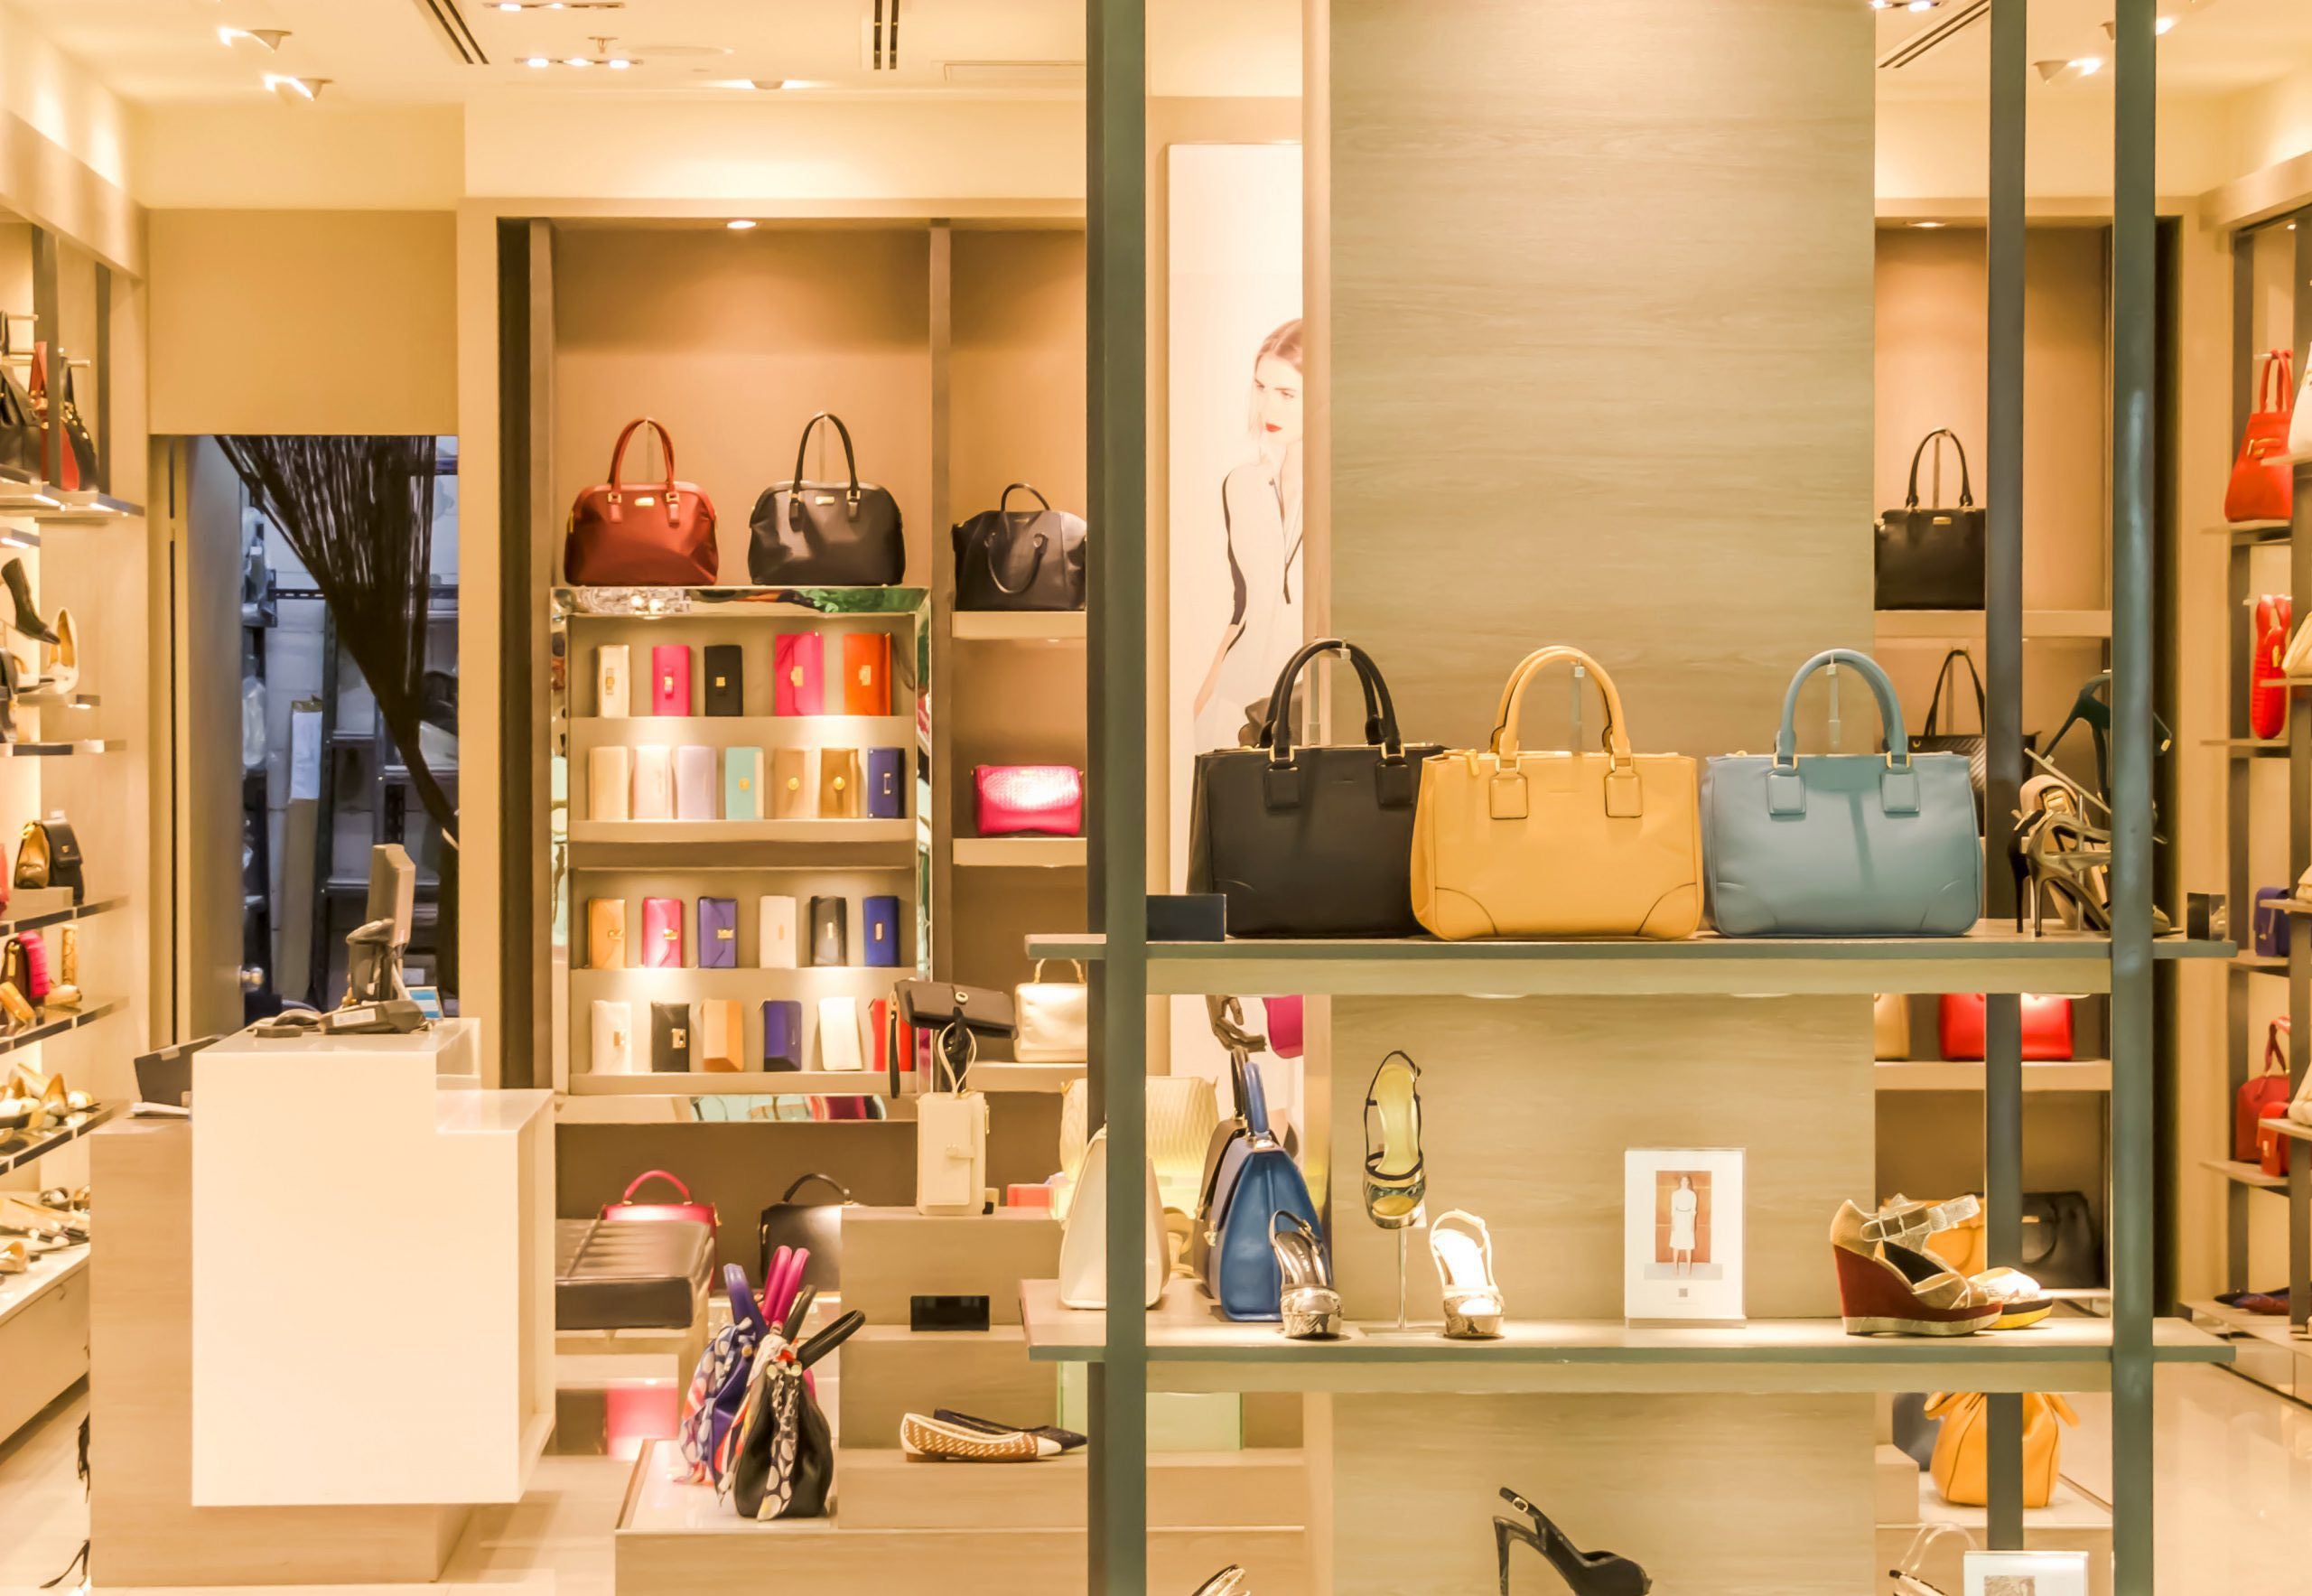 BOUTIQUE are also specified for modren class shops in gulberg heights islamabad